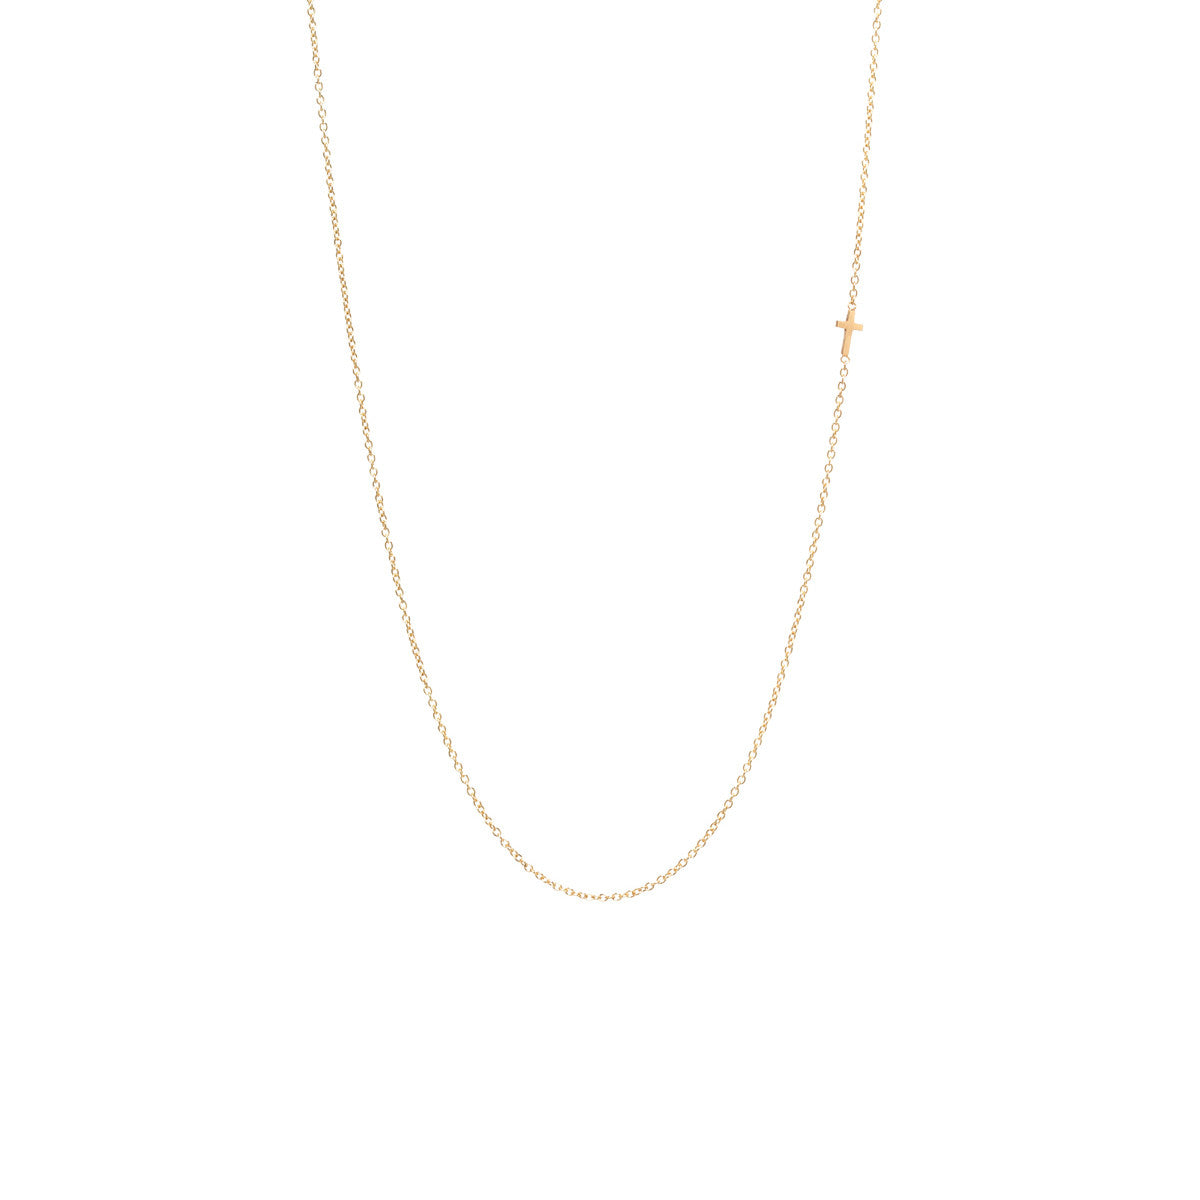 14k itty bitty off-center cross necklace